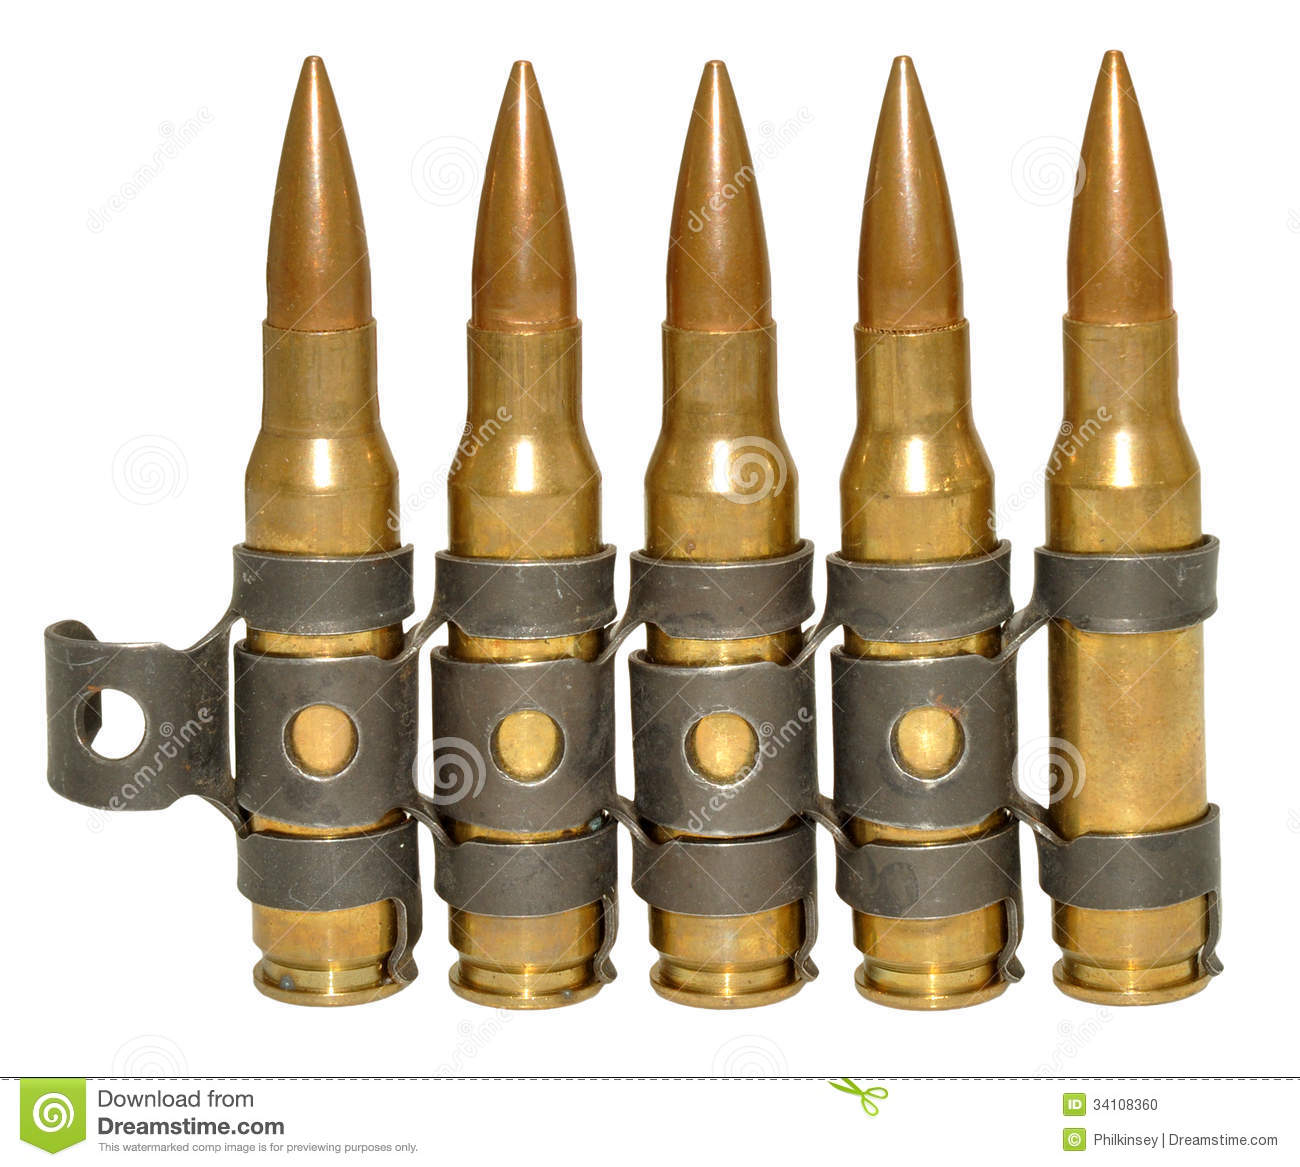 Bullets stock photo  Image of military, army, shells - 34108360